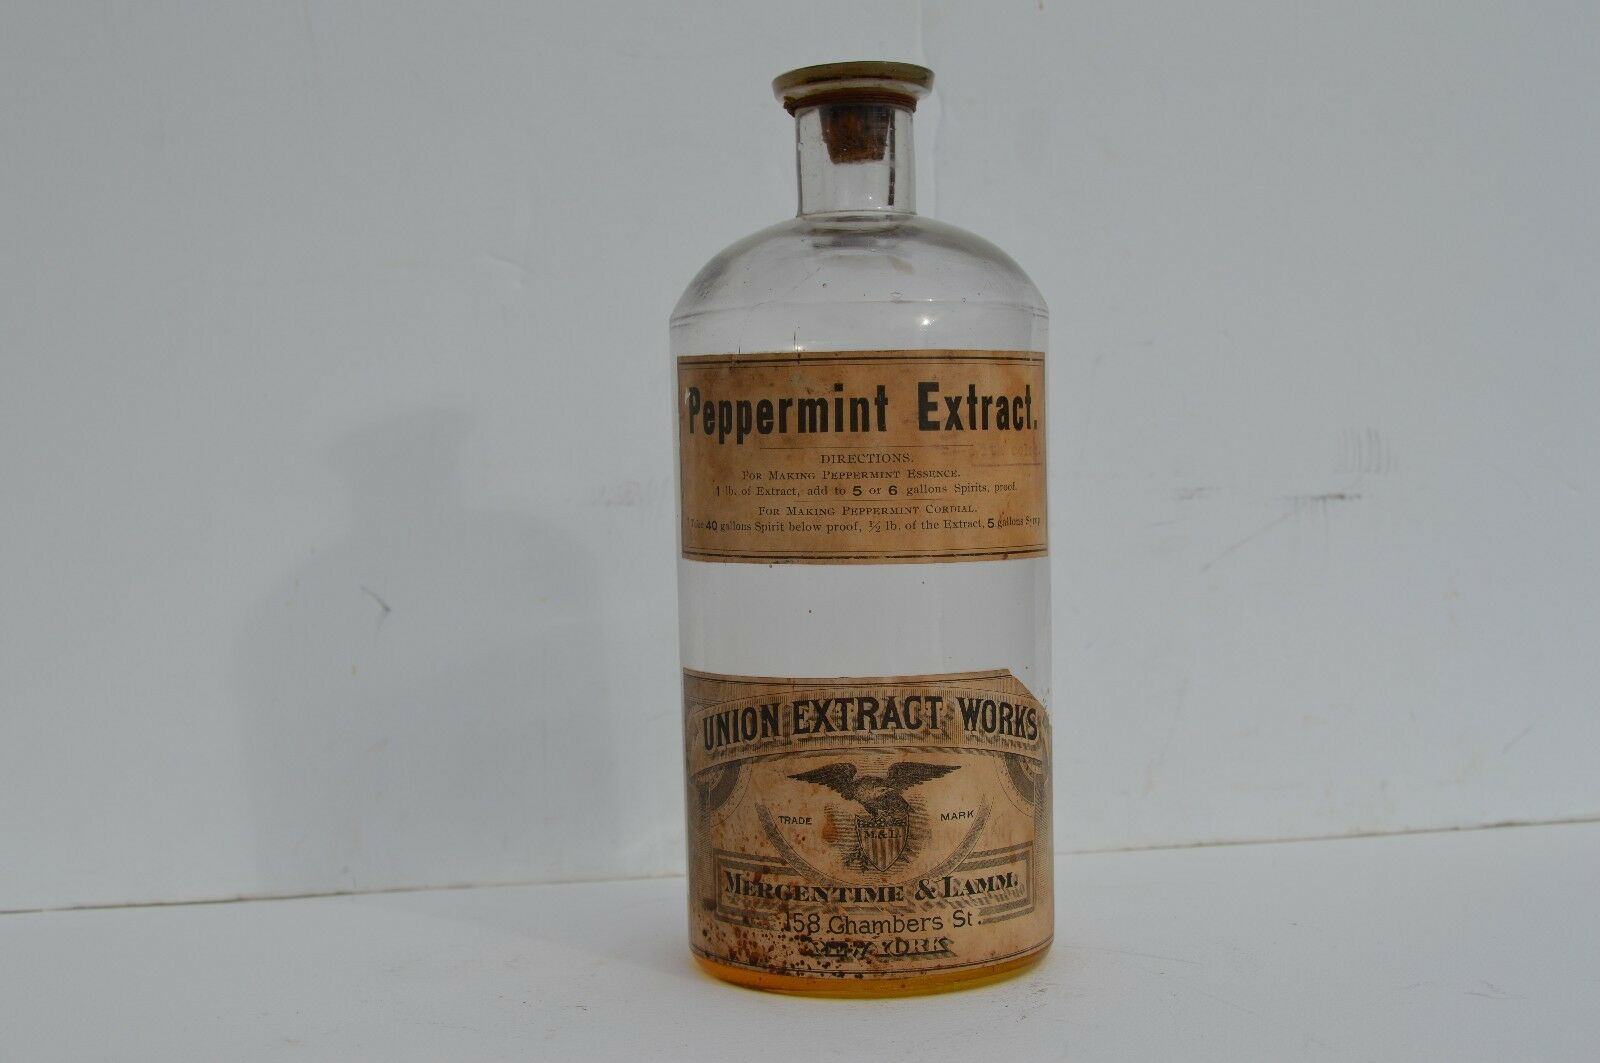 EARLY UNION EXTRACT WORKS  BOTTLE BY MERGENTIME & LAMM IN NEW YORK PAPER LABEL  a lot of concessions